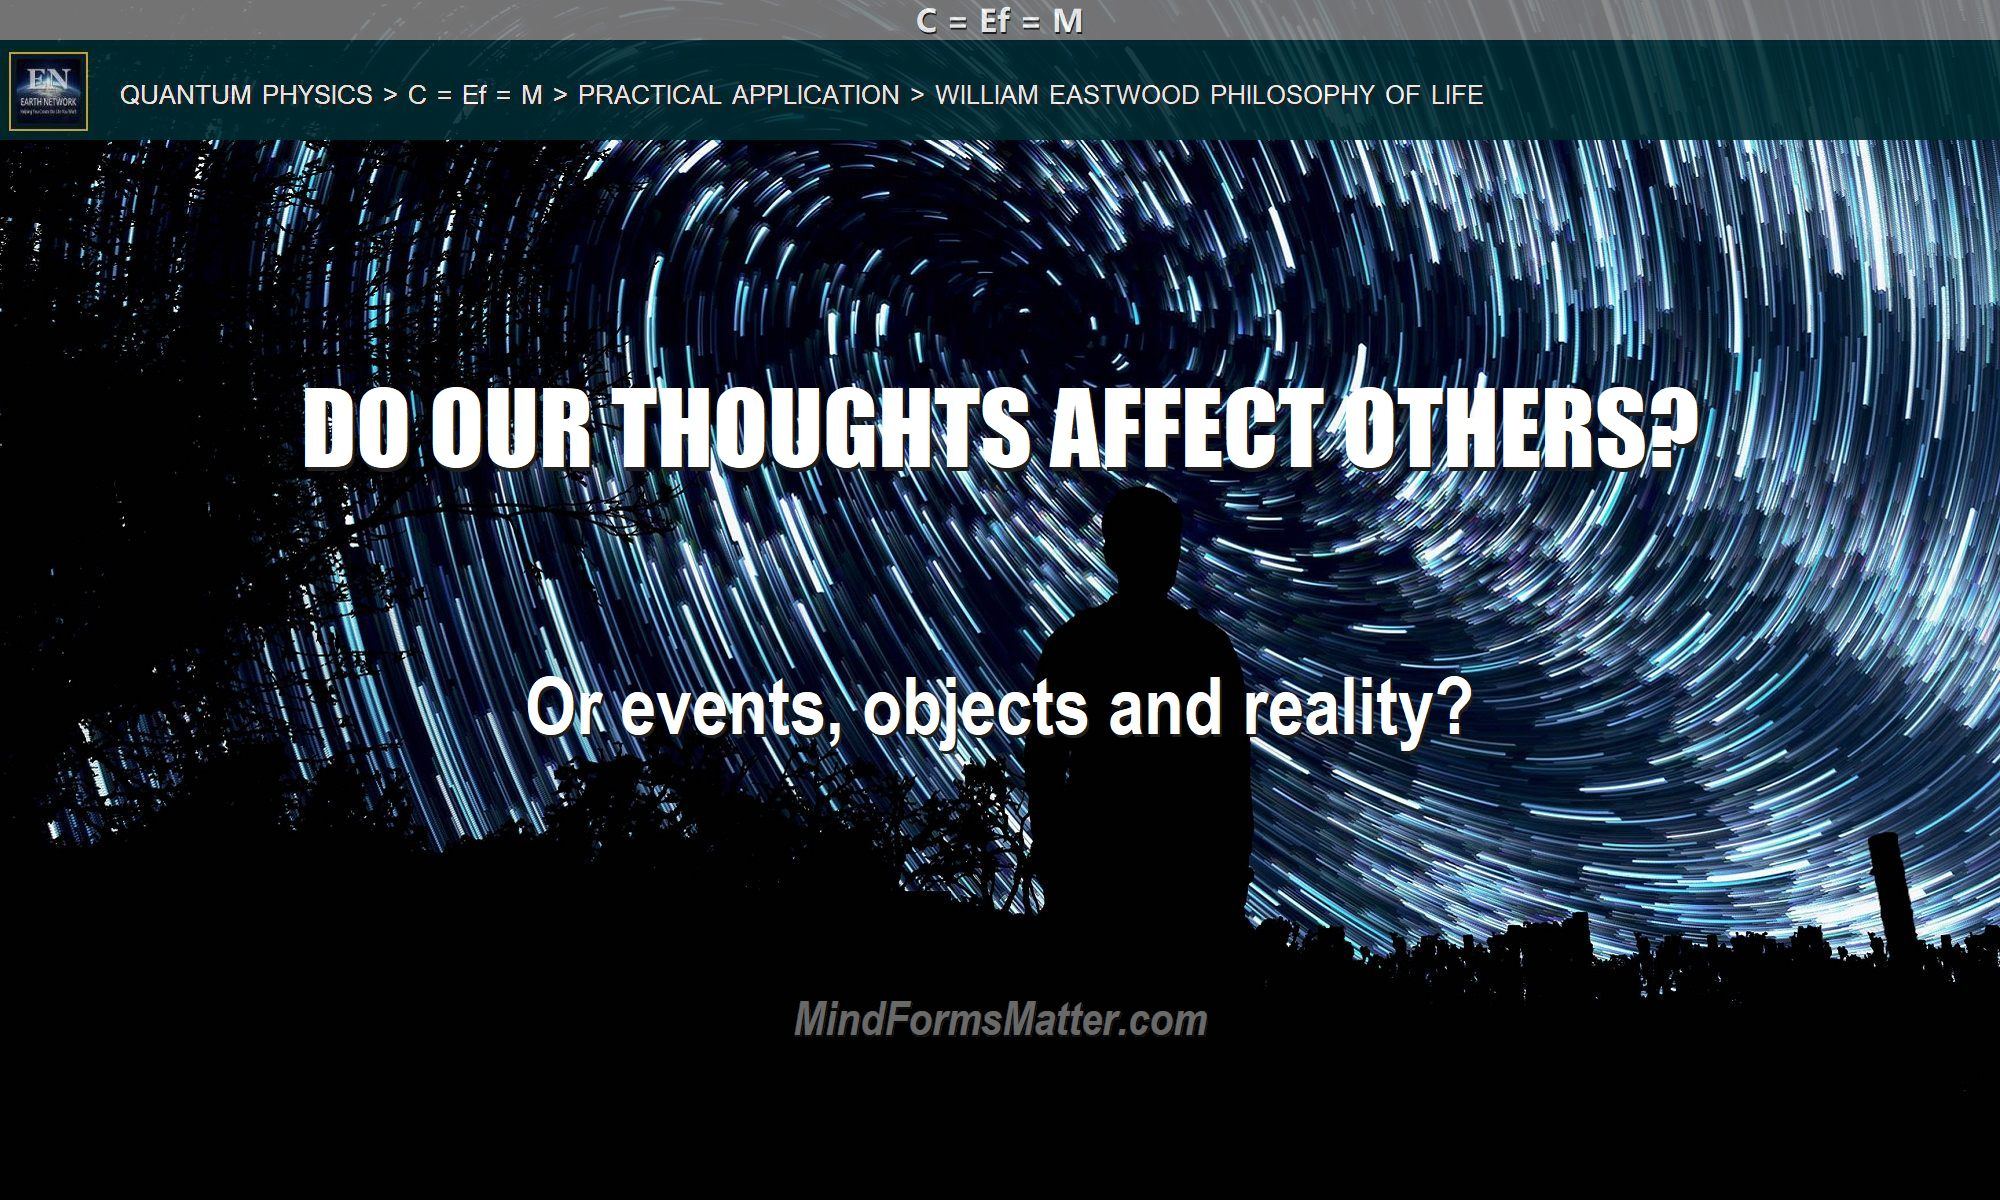 Man at night asking can-do-our-thoughts-affect-others-effect-influence-people-events-objects-reality-everything?